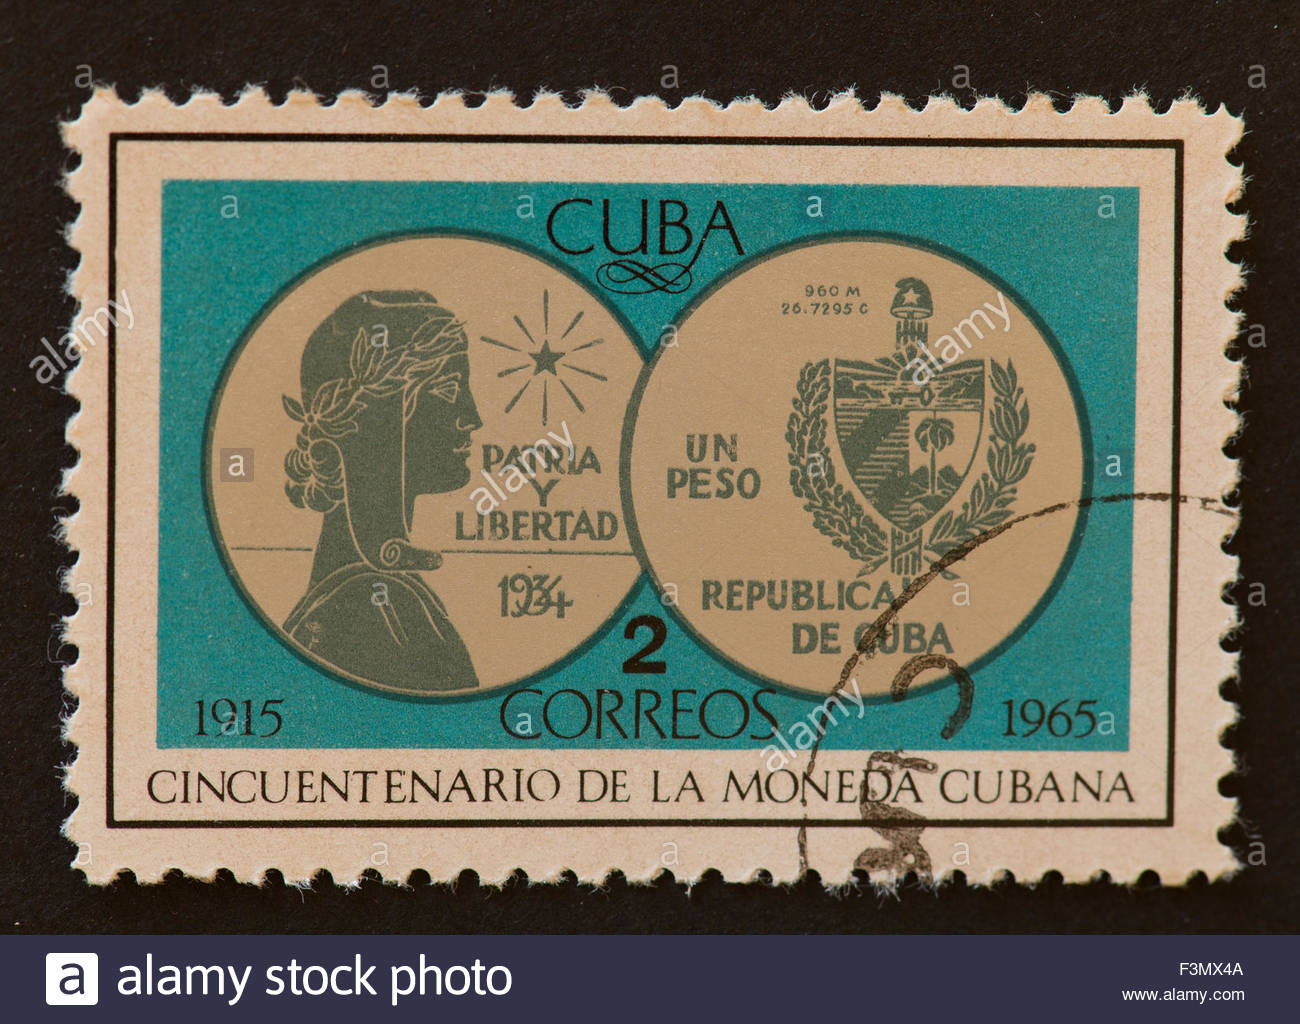 Cuban postage stamp: celebrating the fiftieth or 50th anniversary of the Cuban money or currency. - Stock Image